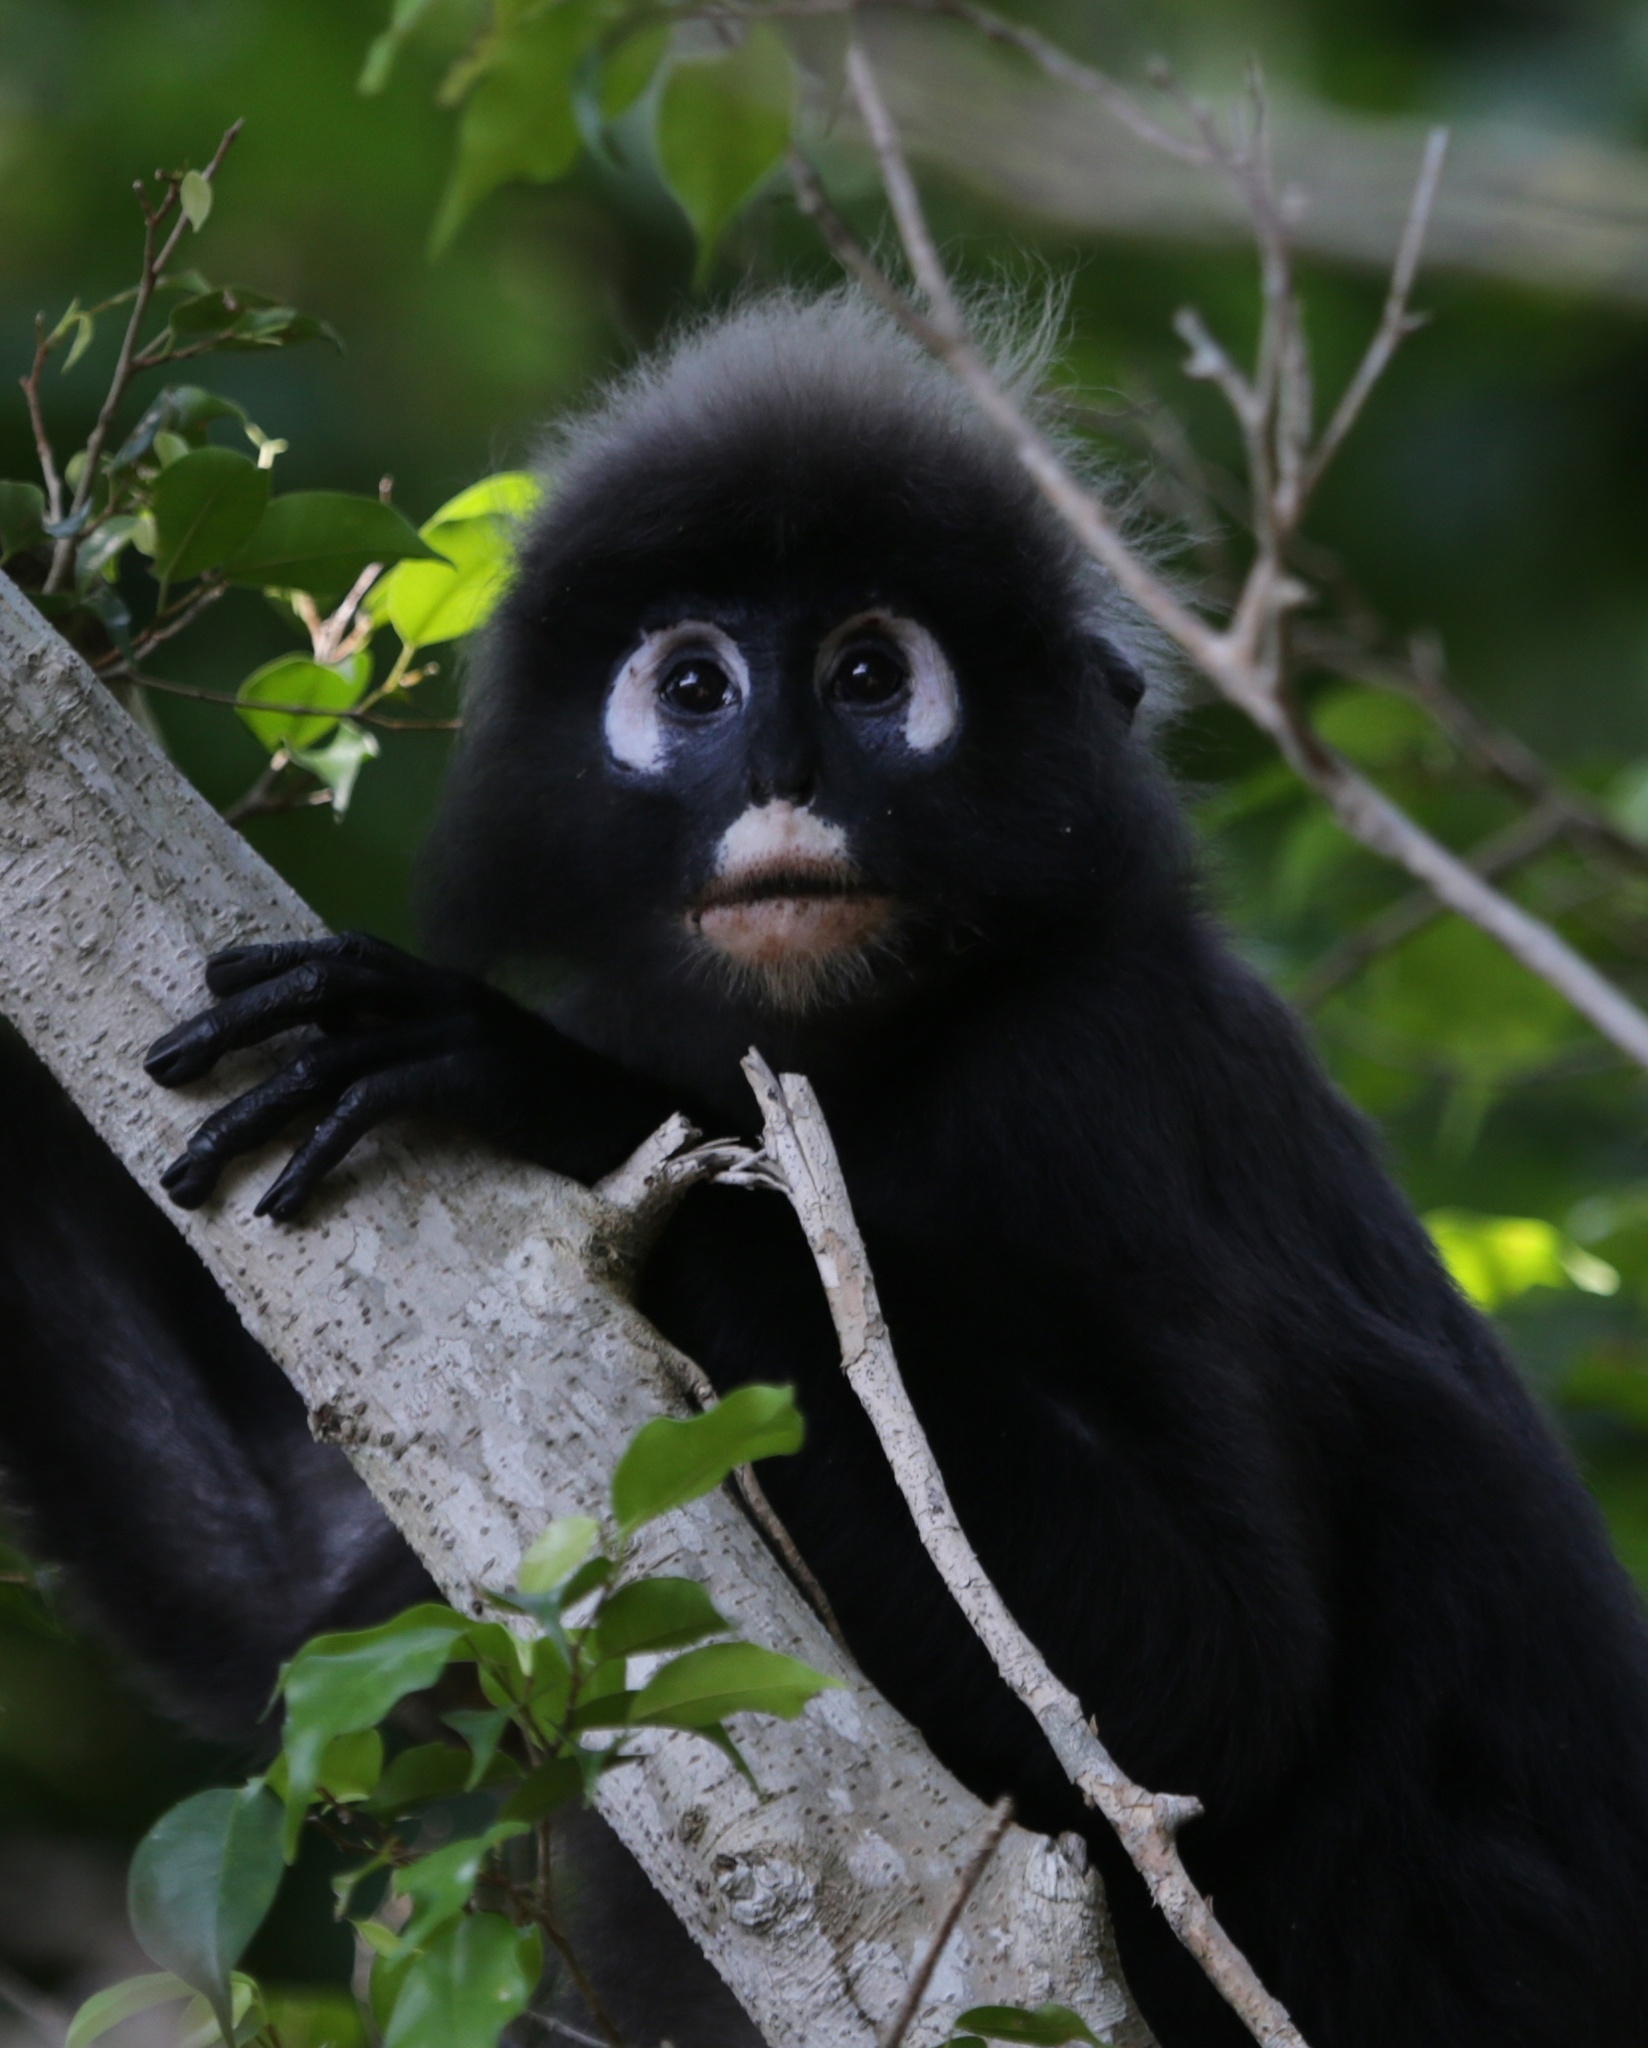 Spectacled Monkey by christine.a.pipes